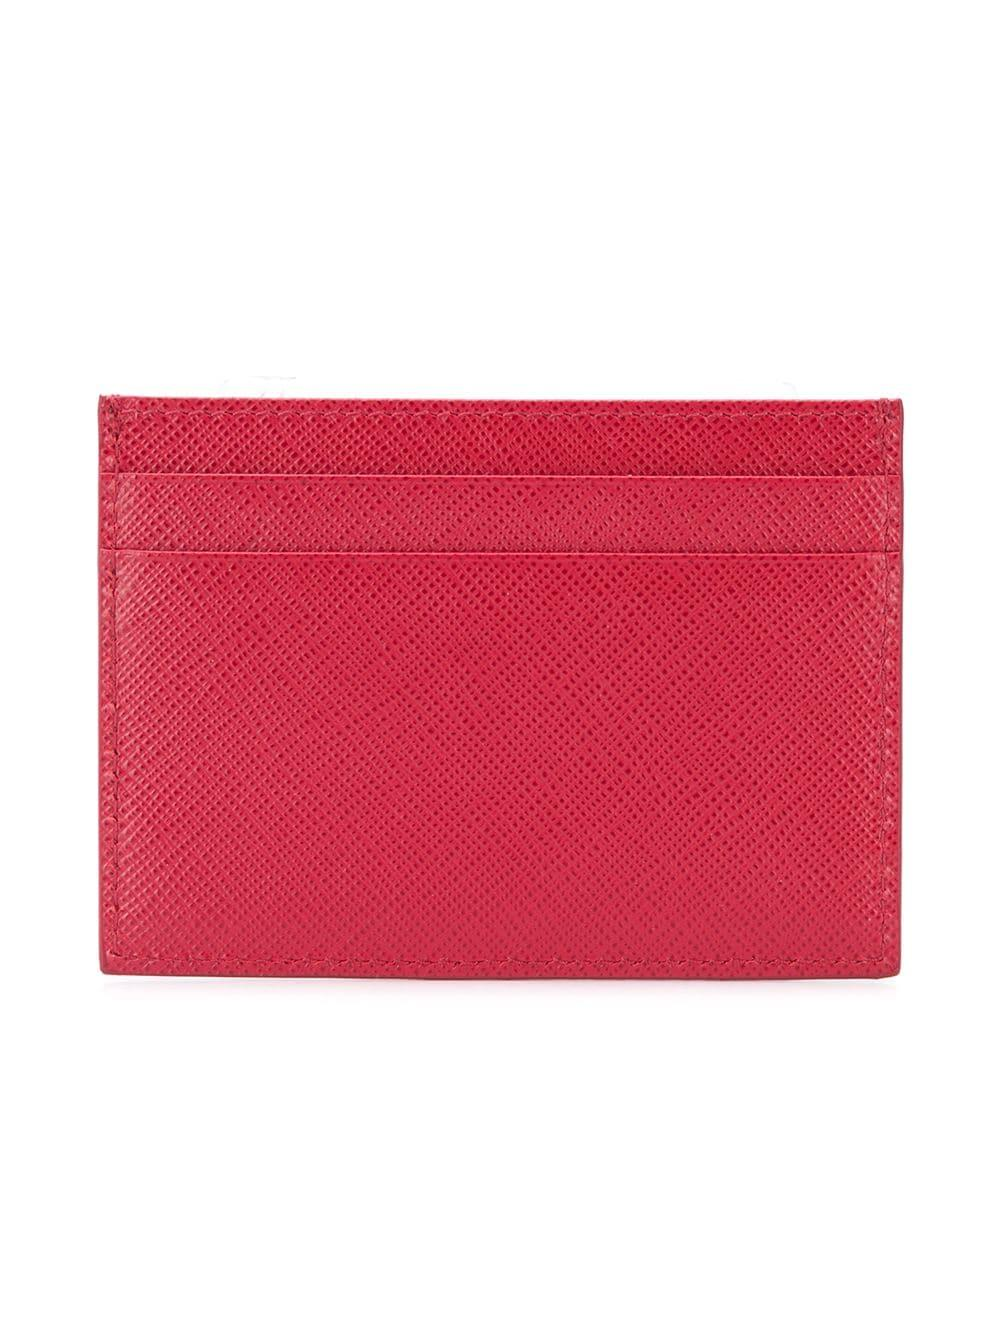 45e0d046d1cc Lyst - Prada Slim Card-holder in Red for Men